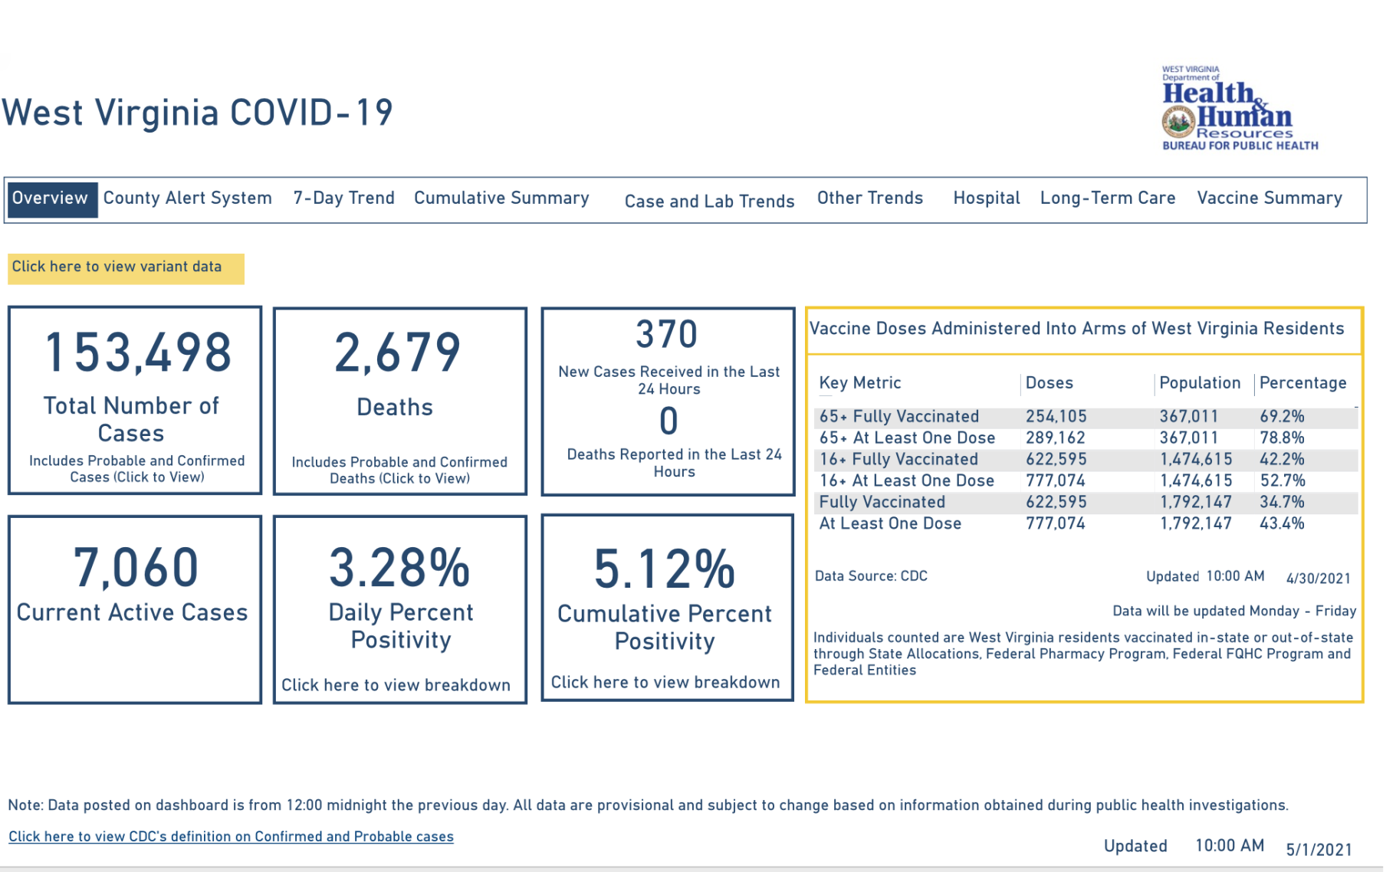 West Virginia COVID-19 Dashboard, 5-1-2021